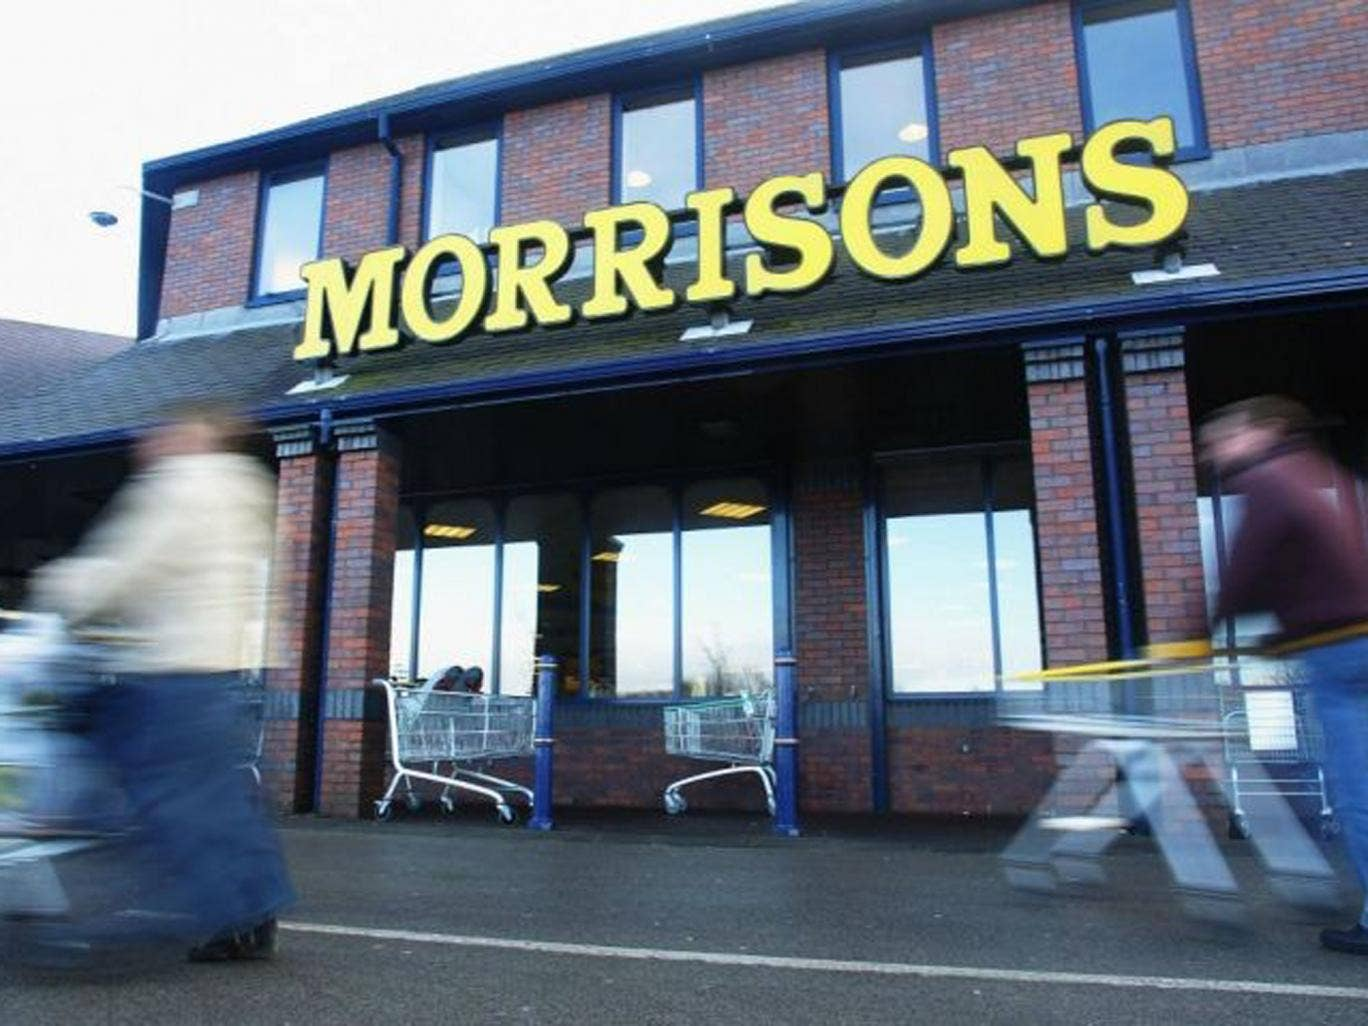 Morrisons farm-to-table strategy has saved it from being embroiled in the horsemeat debacle